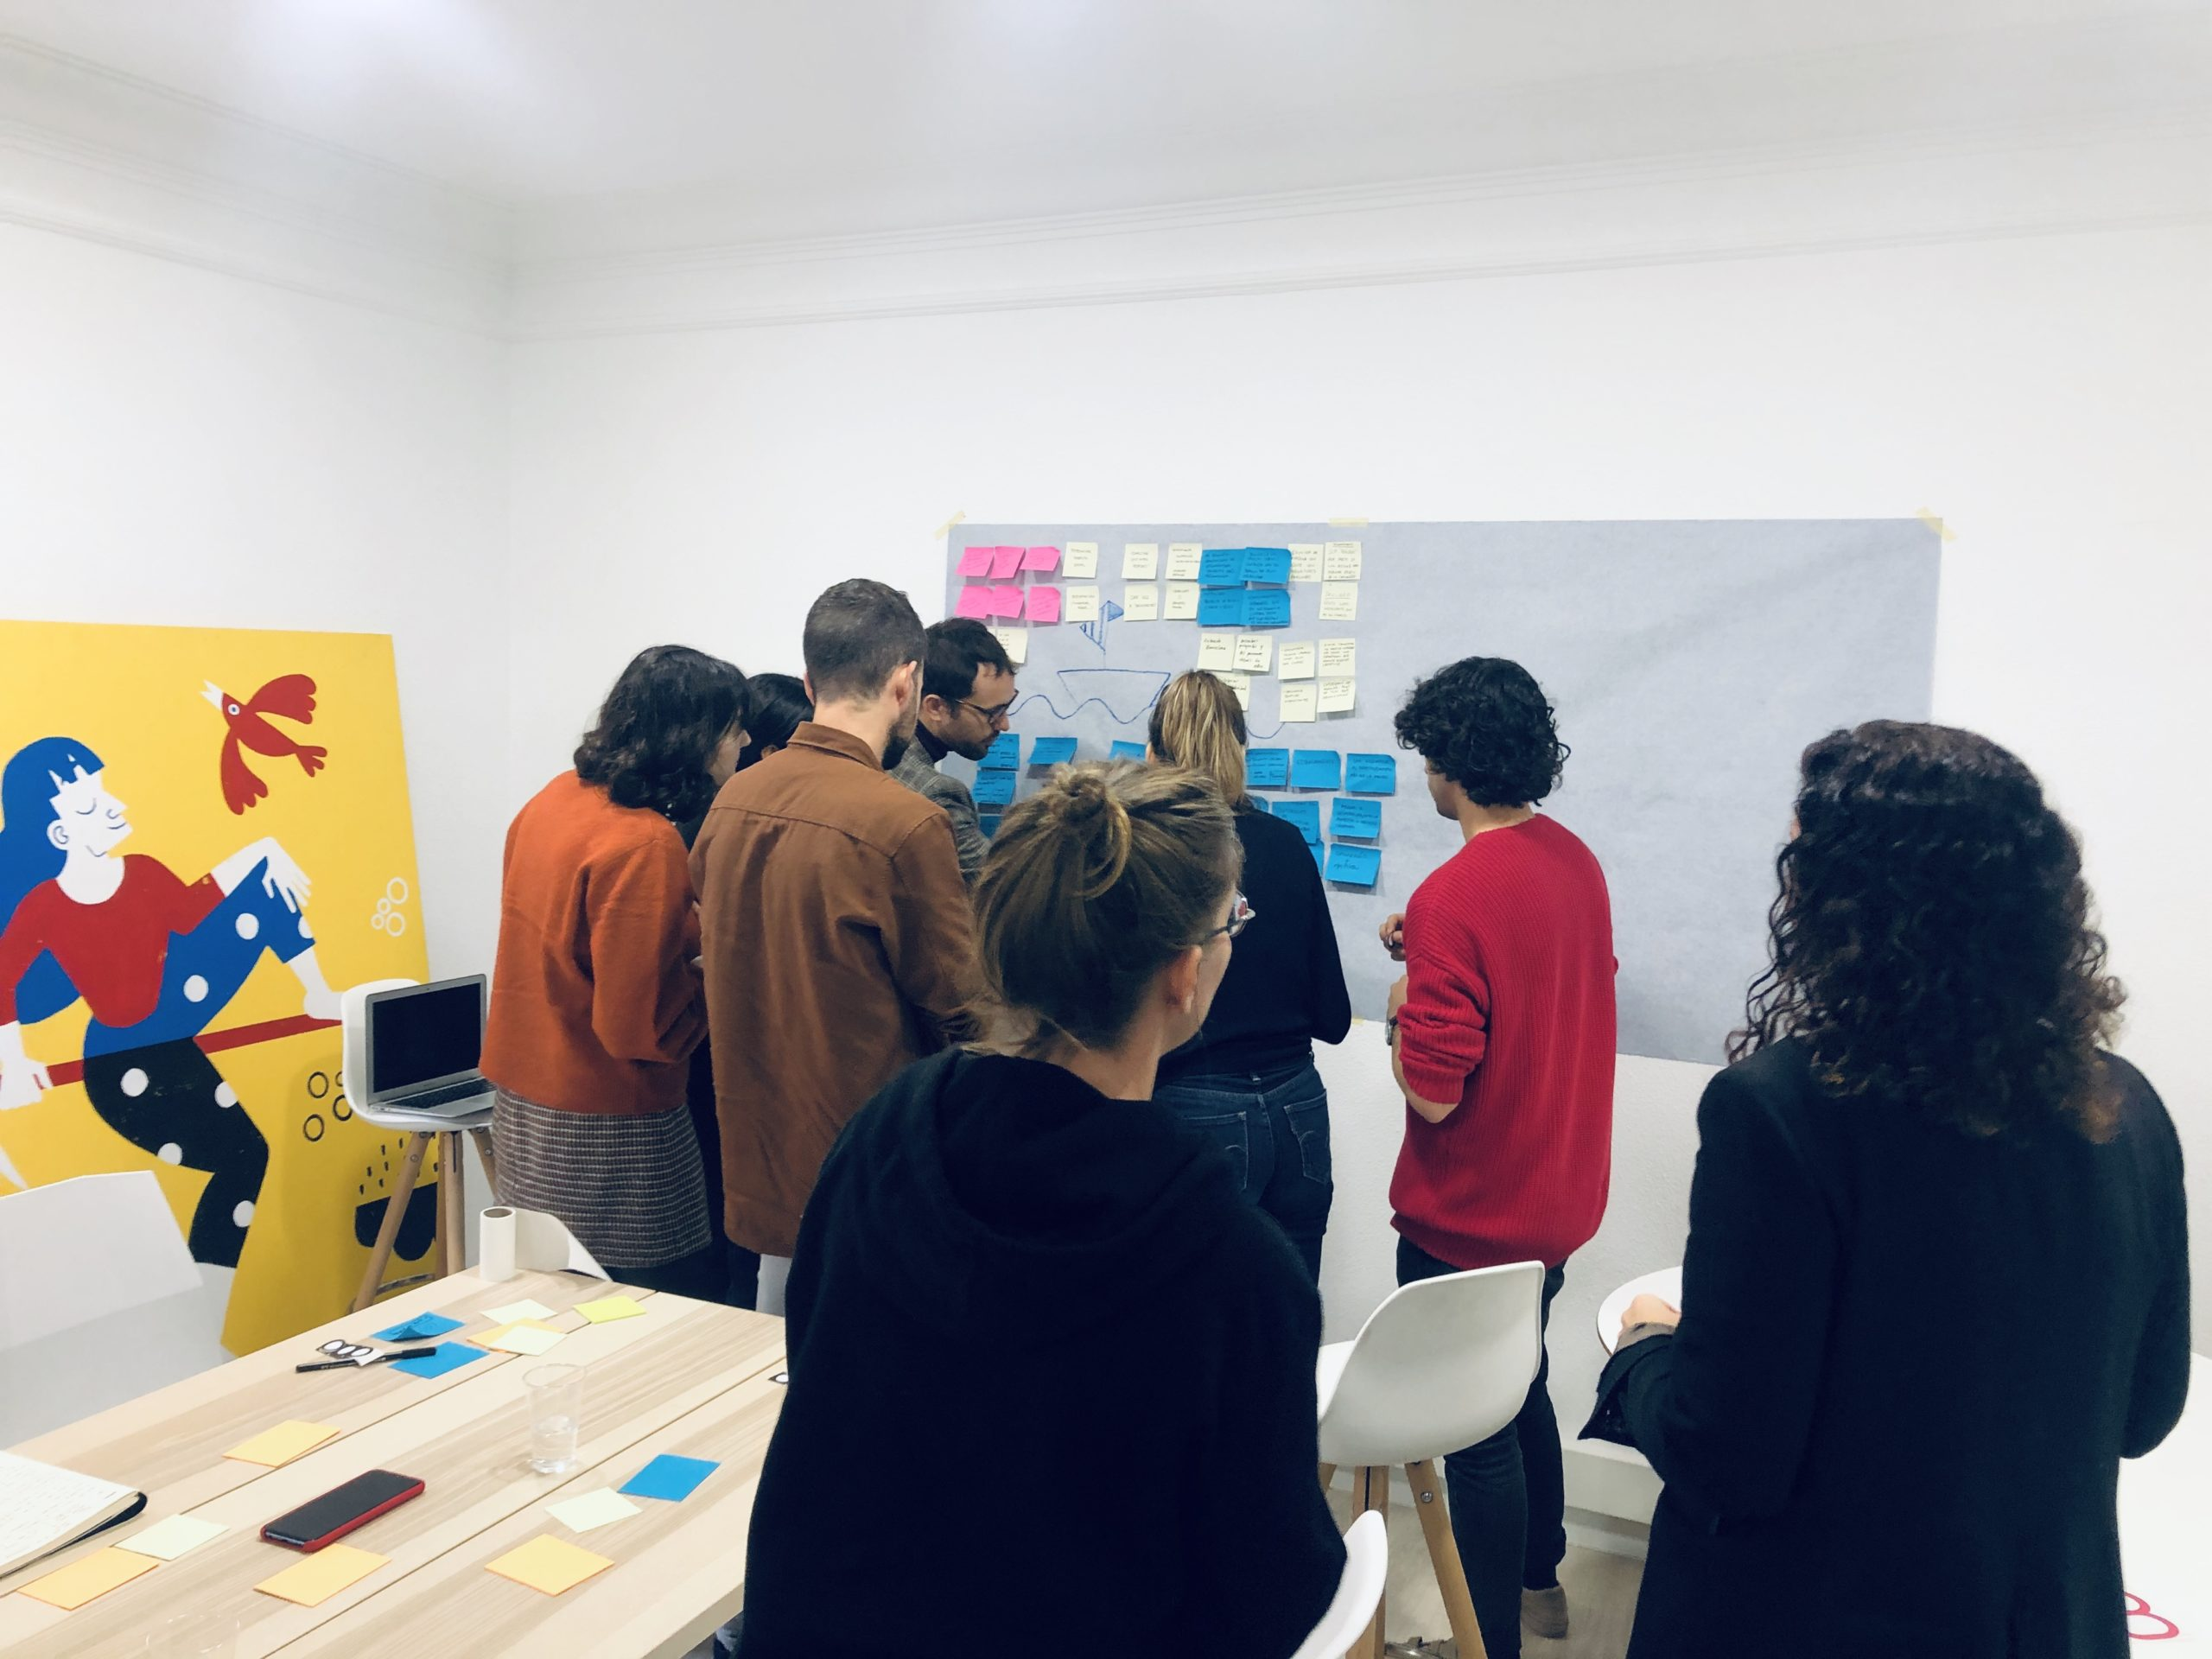 Workshop for The Creative Net